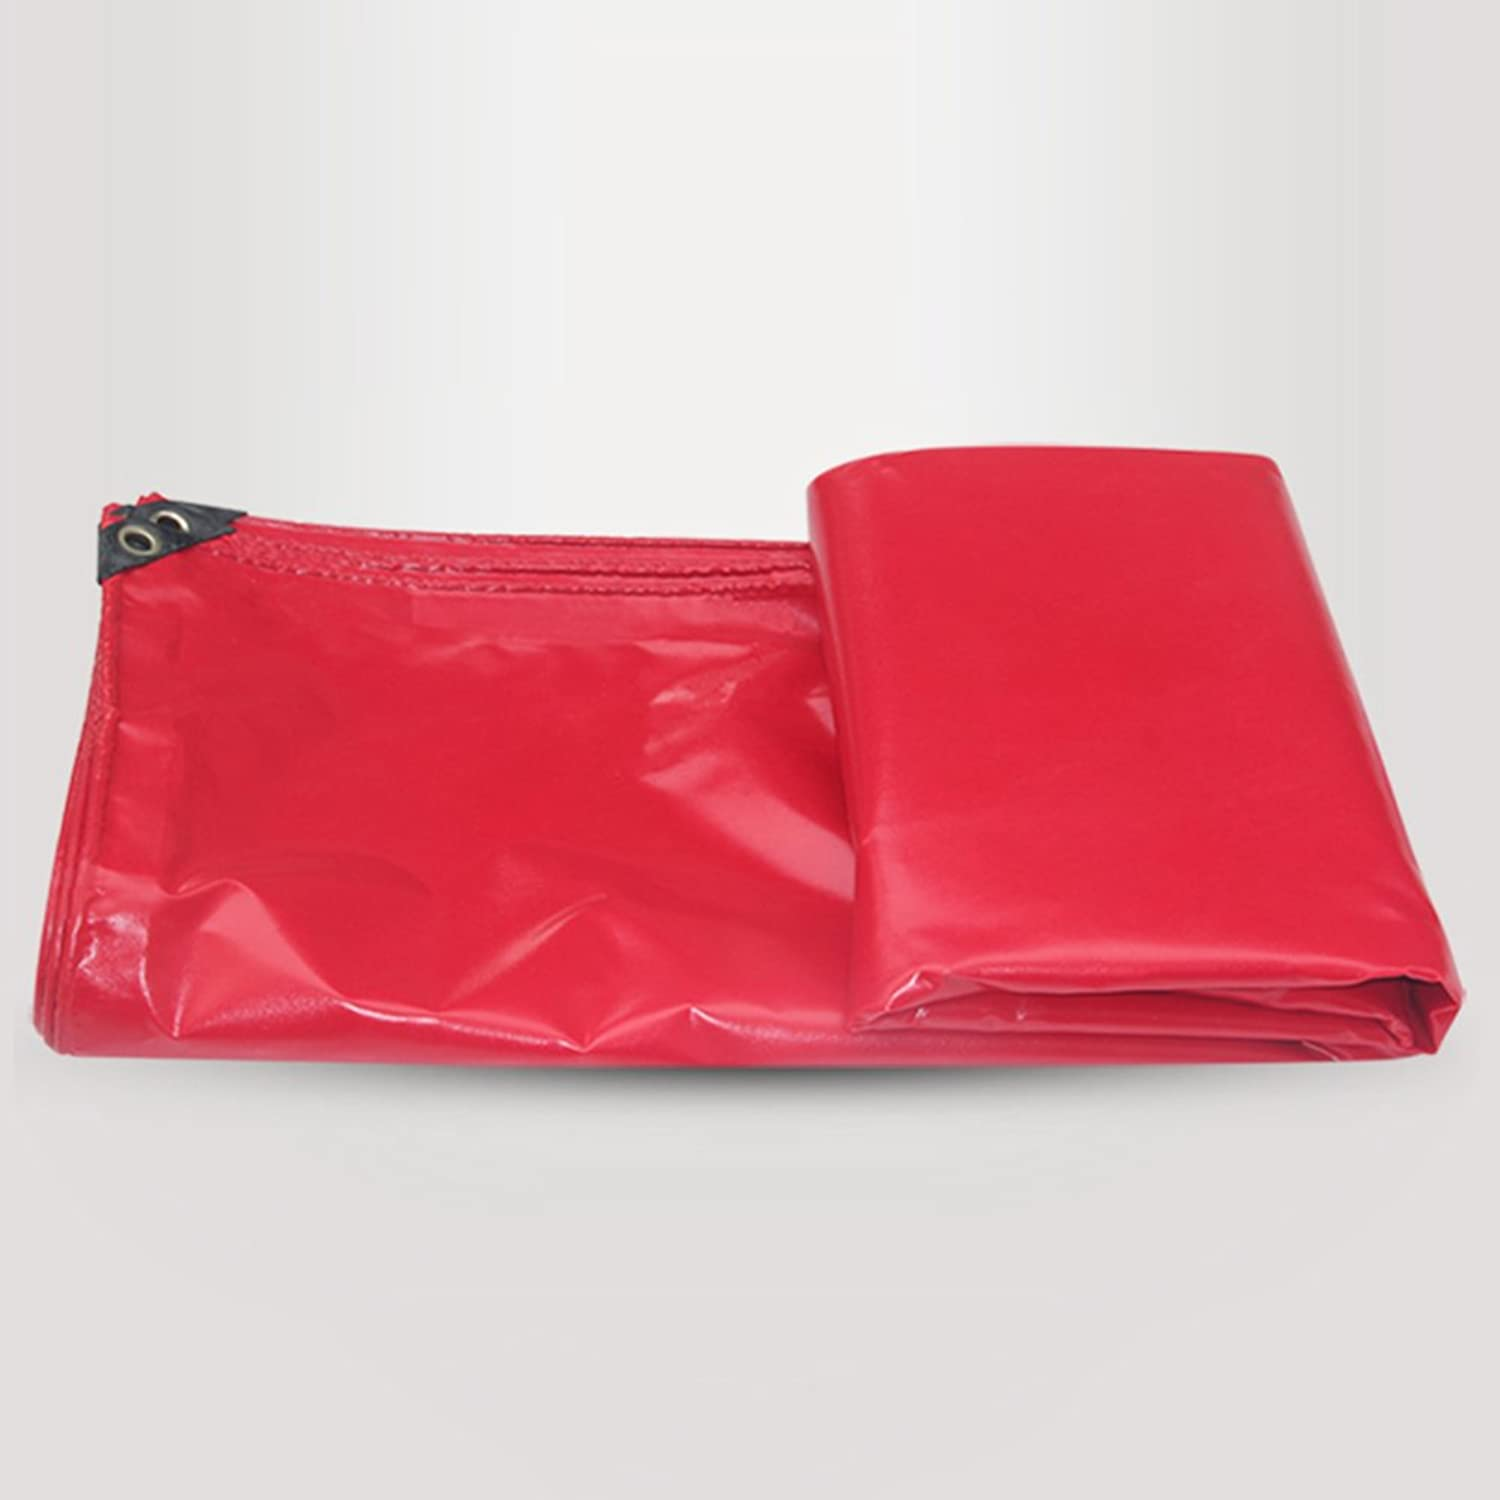 ZEMIN Tarpaulin Waterproof Sunscreen Tent Sheet Roof Windproof DoubleSided Thicken Polyester, Red, 450G M2, 10